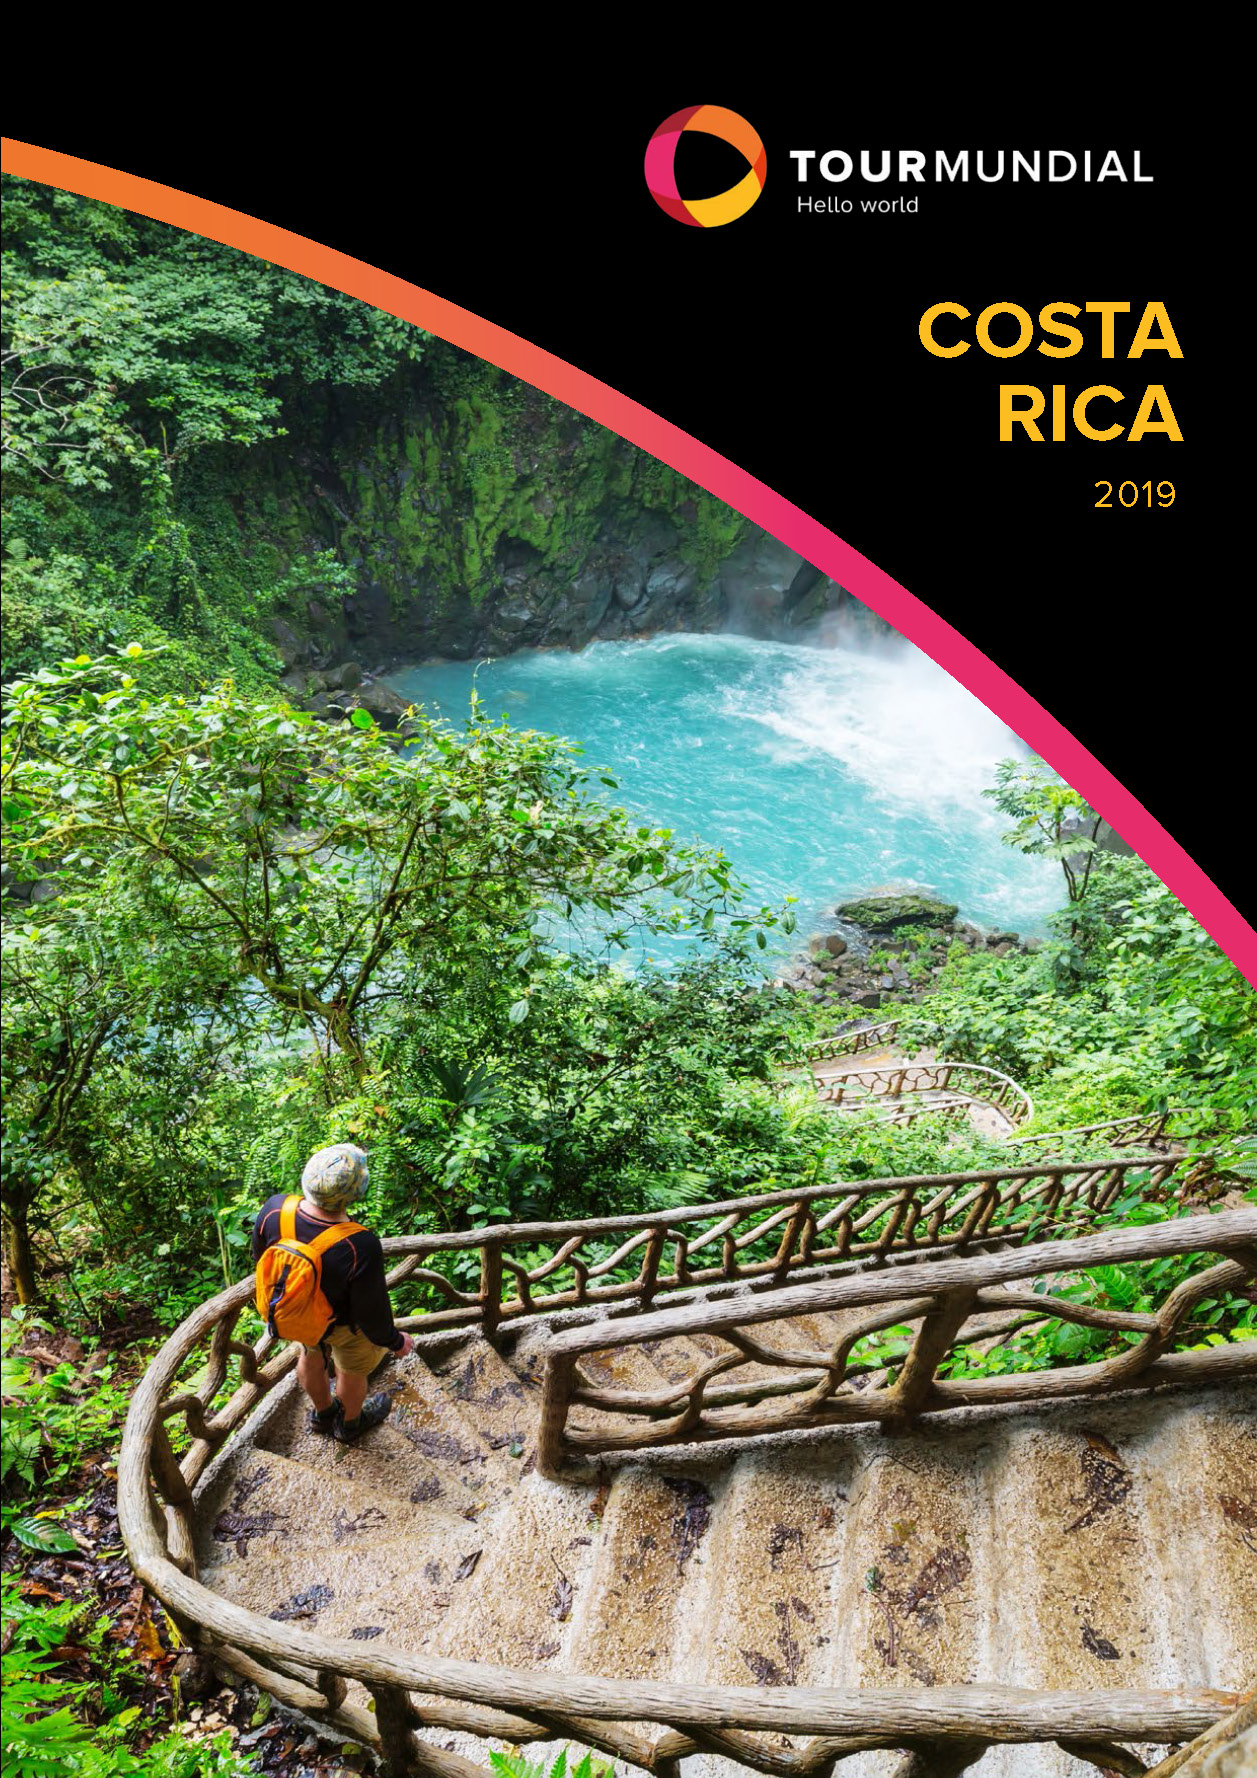 Catalogo Tourmundial Costa Rica 2019